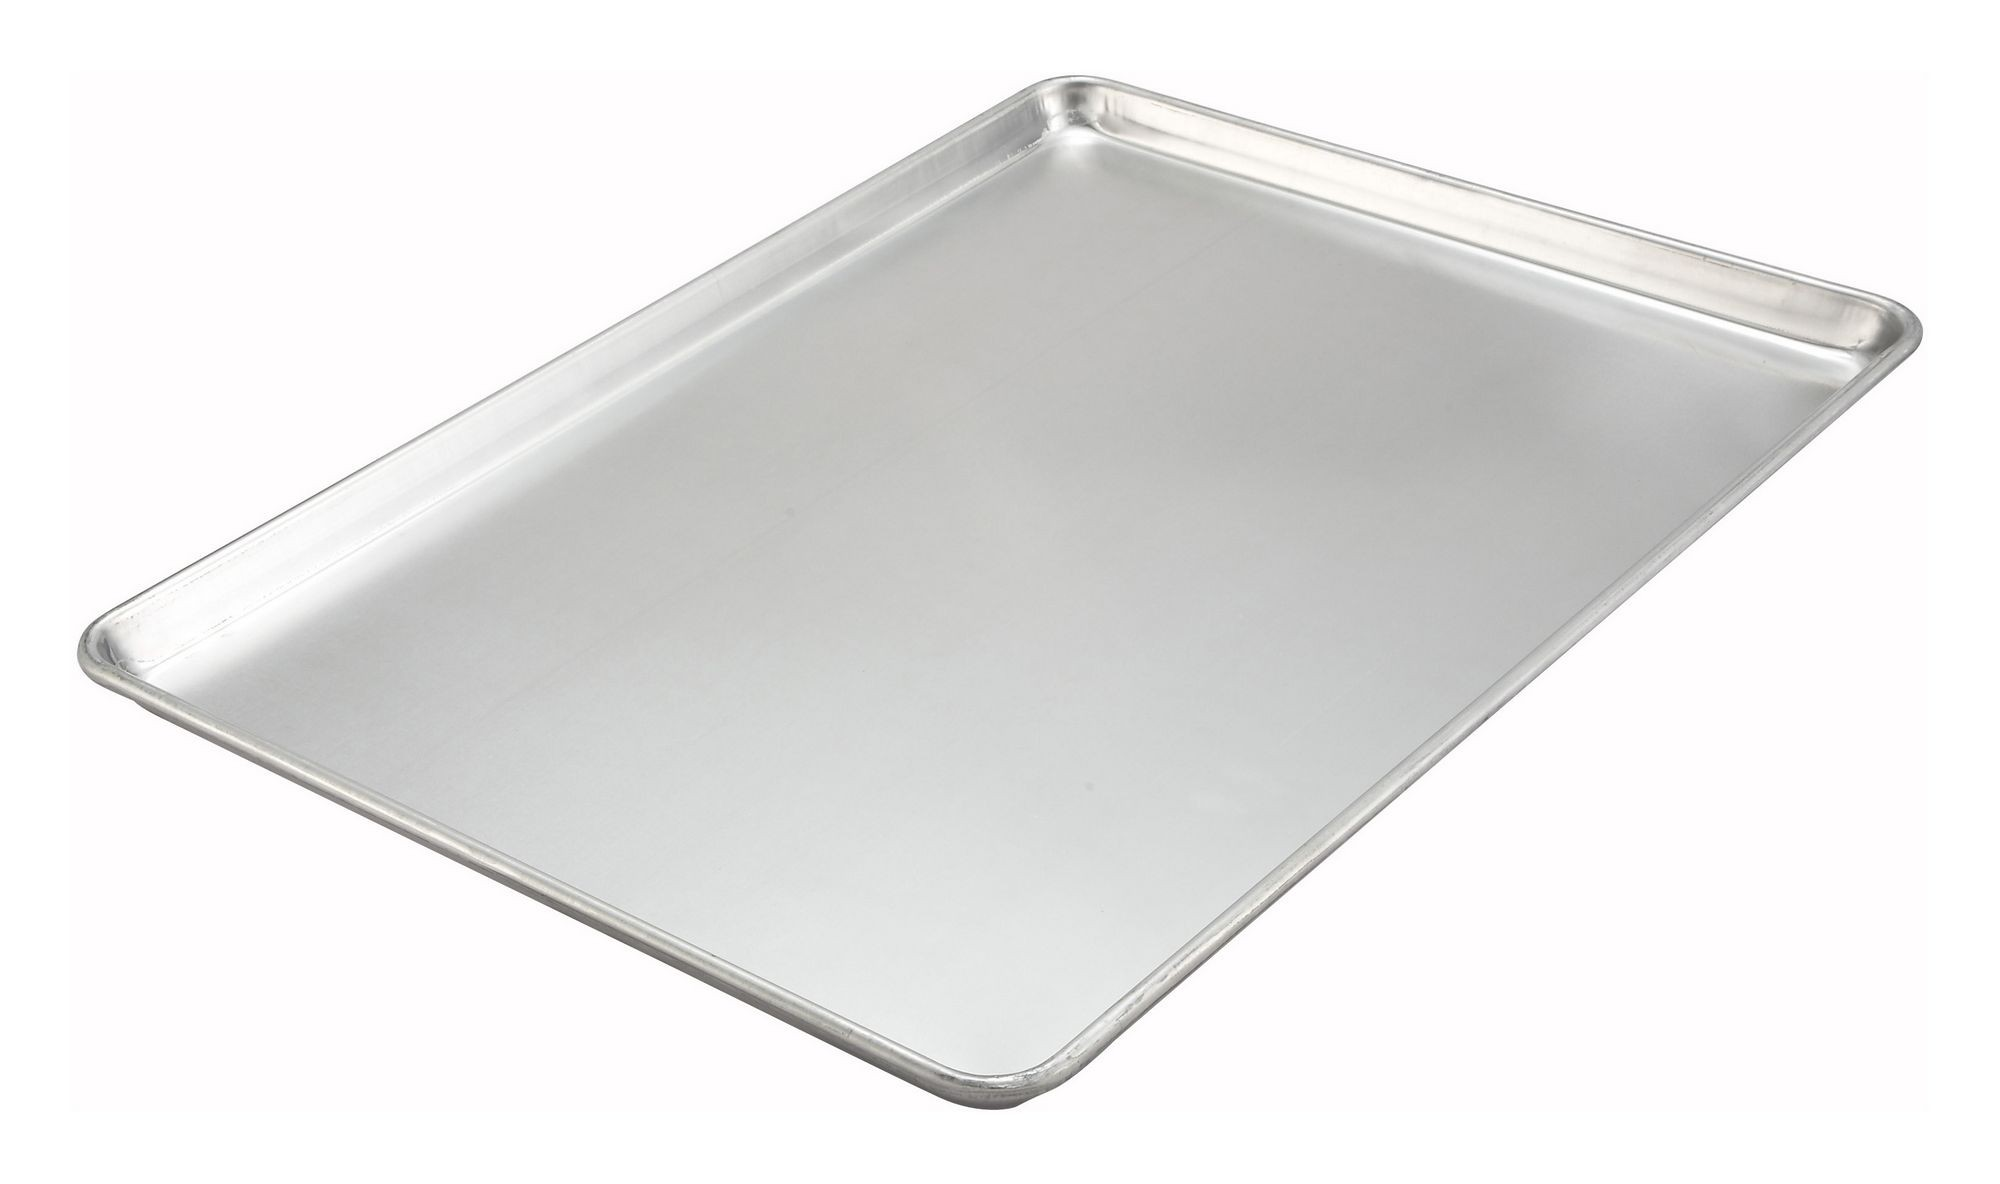 "Winco ALXP-1826 Full-Size Aluminum Sheet Pan, 18"" x 26"""